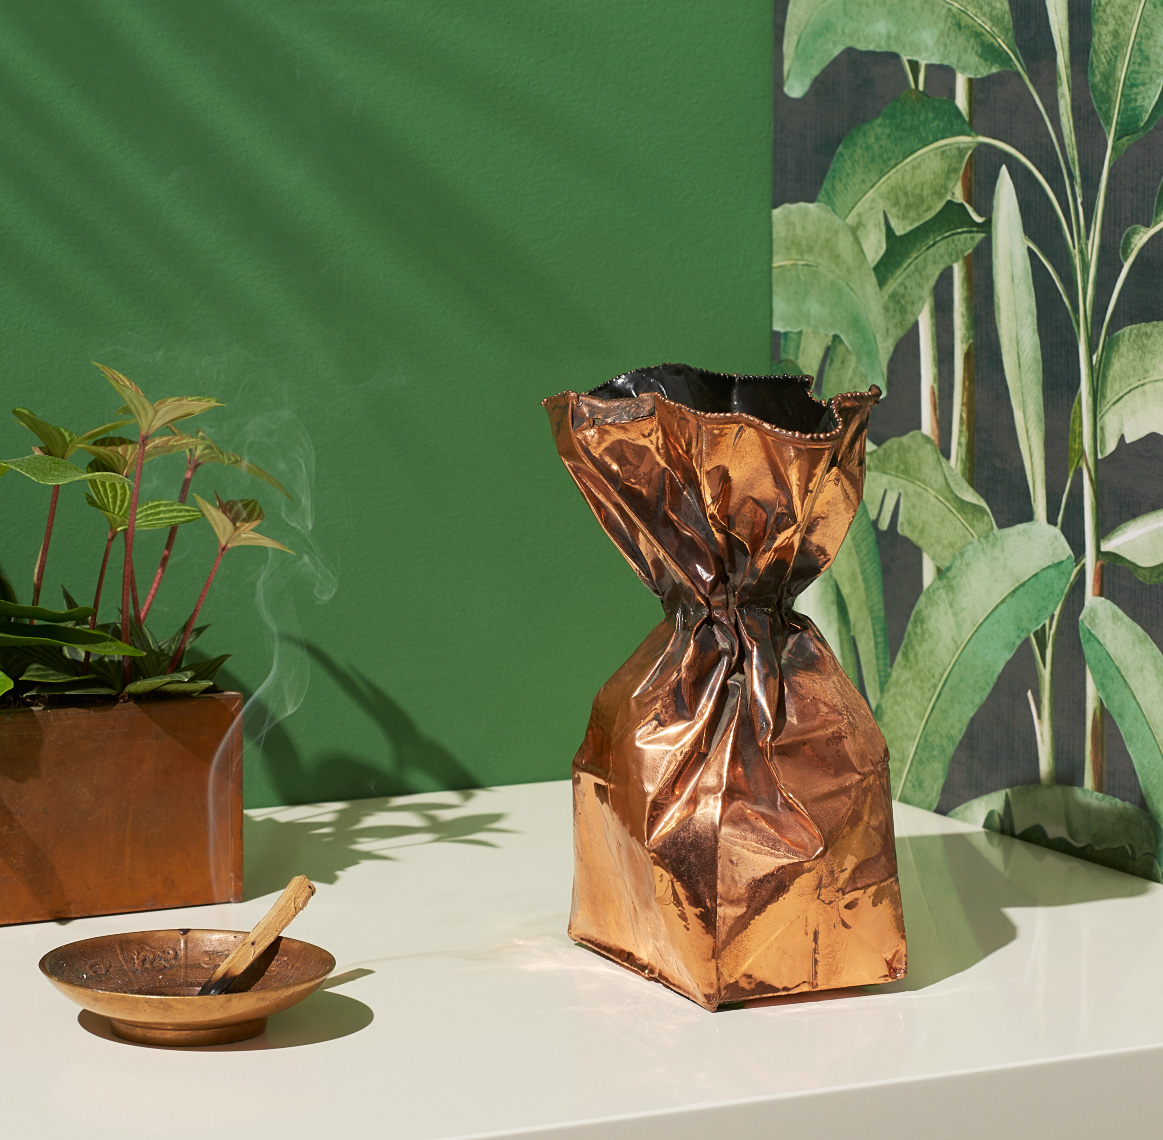 cooper sculpture of paper bag with copper incent holder burning Palo Santo stick against palm leaf wallpaper